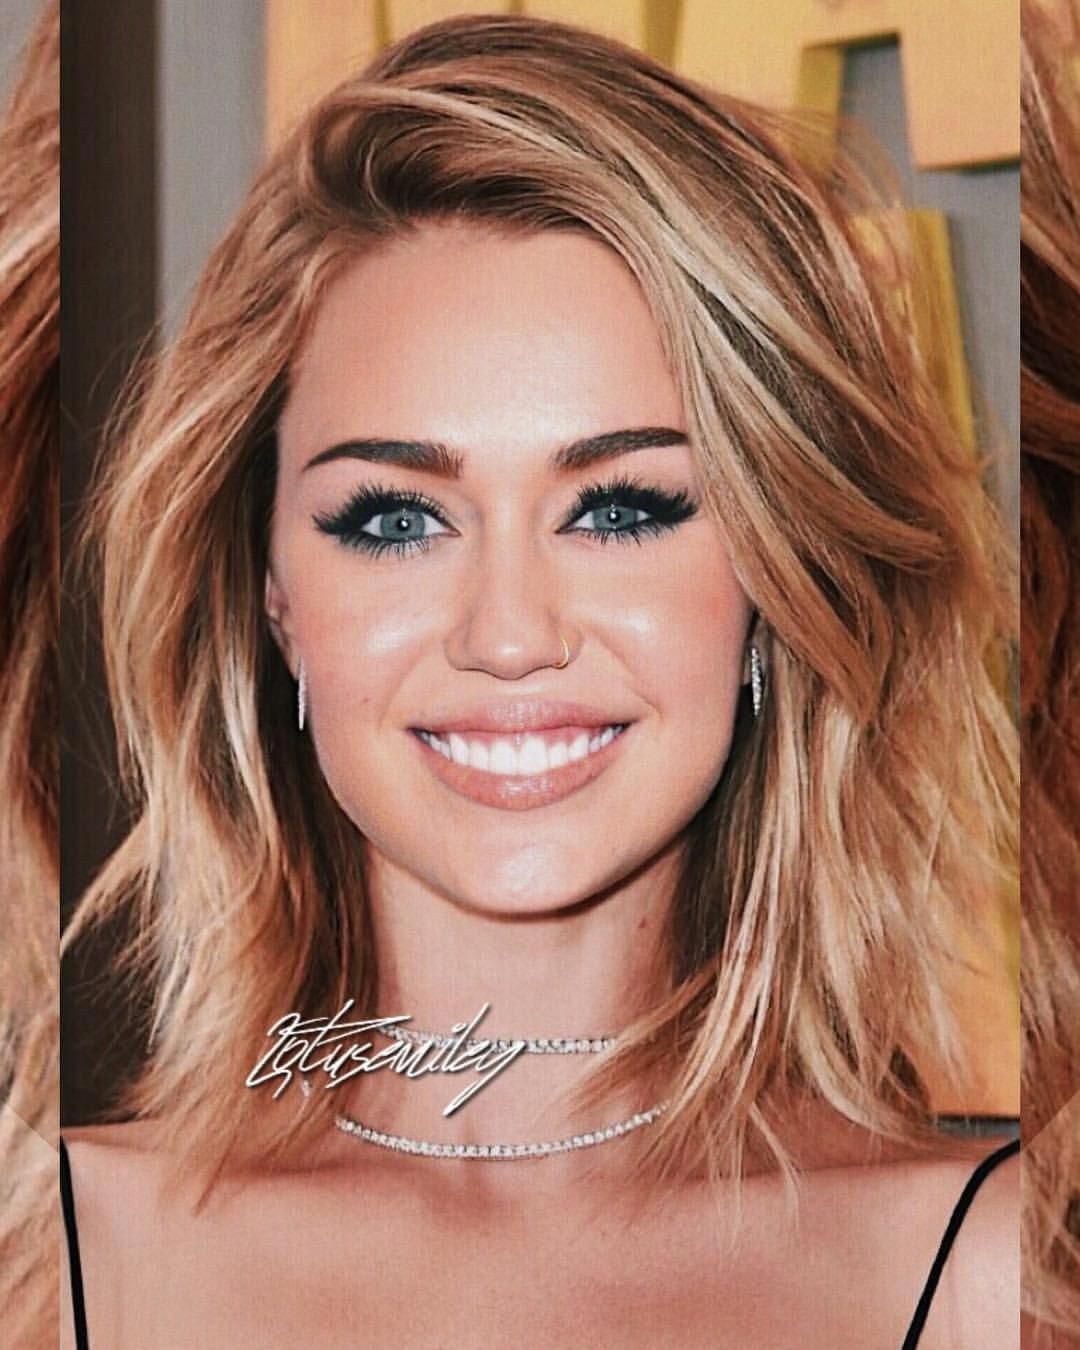 Miley Cyrus Longbobhaircutswithbangs Mom Hairstyles Medium Hair Styles Miley Cyrus Hair